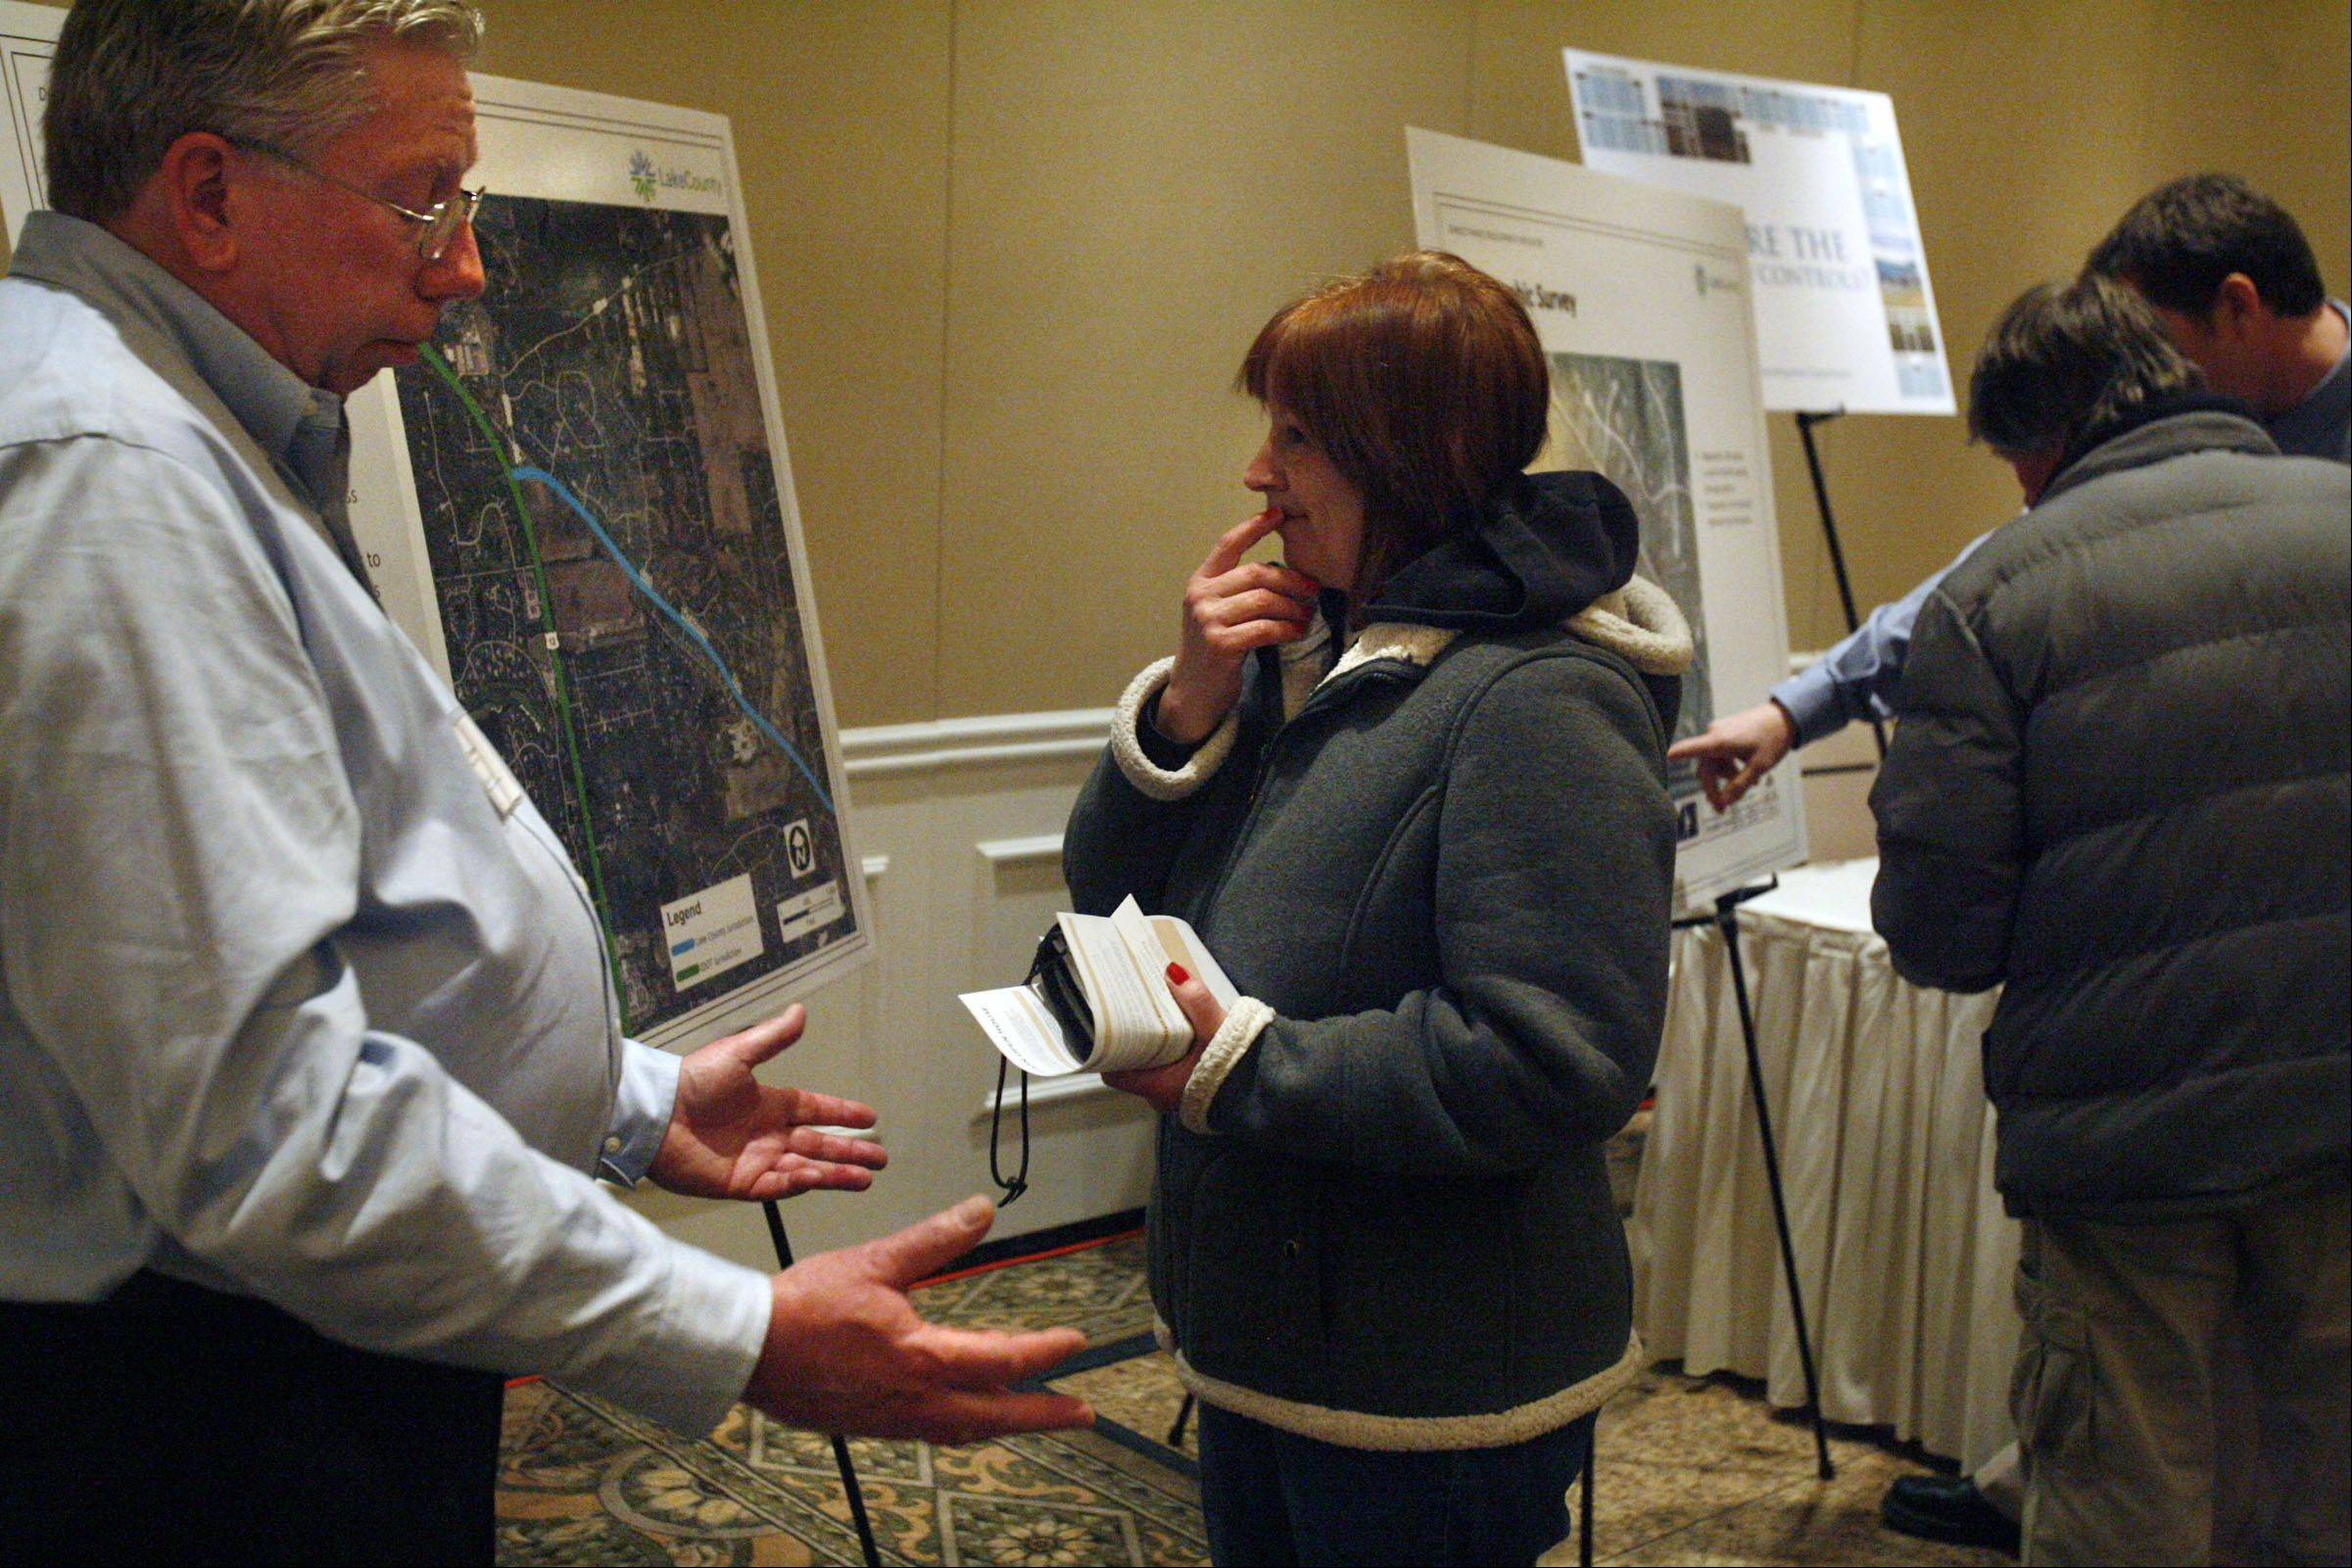 George Leclaire/gleclaire@dailyherald.comKaren Sande of Kildeer discusses development of a shopping mall with Lake County planner Bruce Christensen at a Saturday open house.